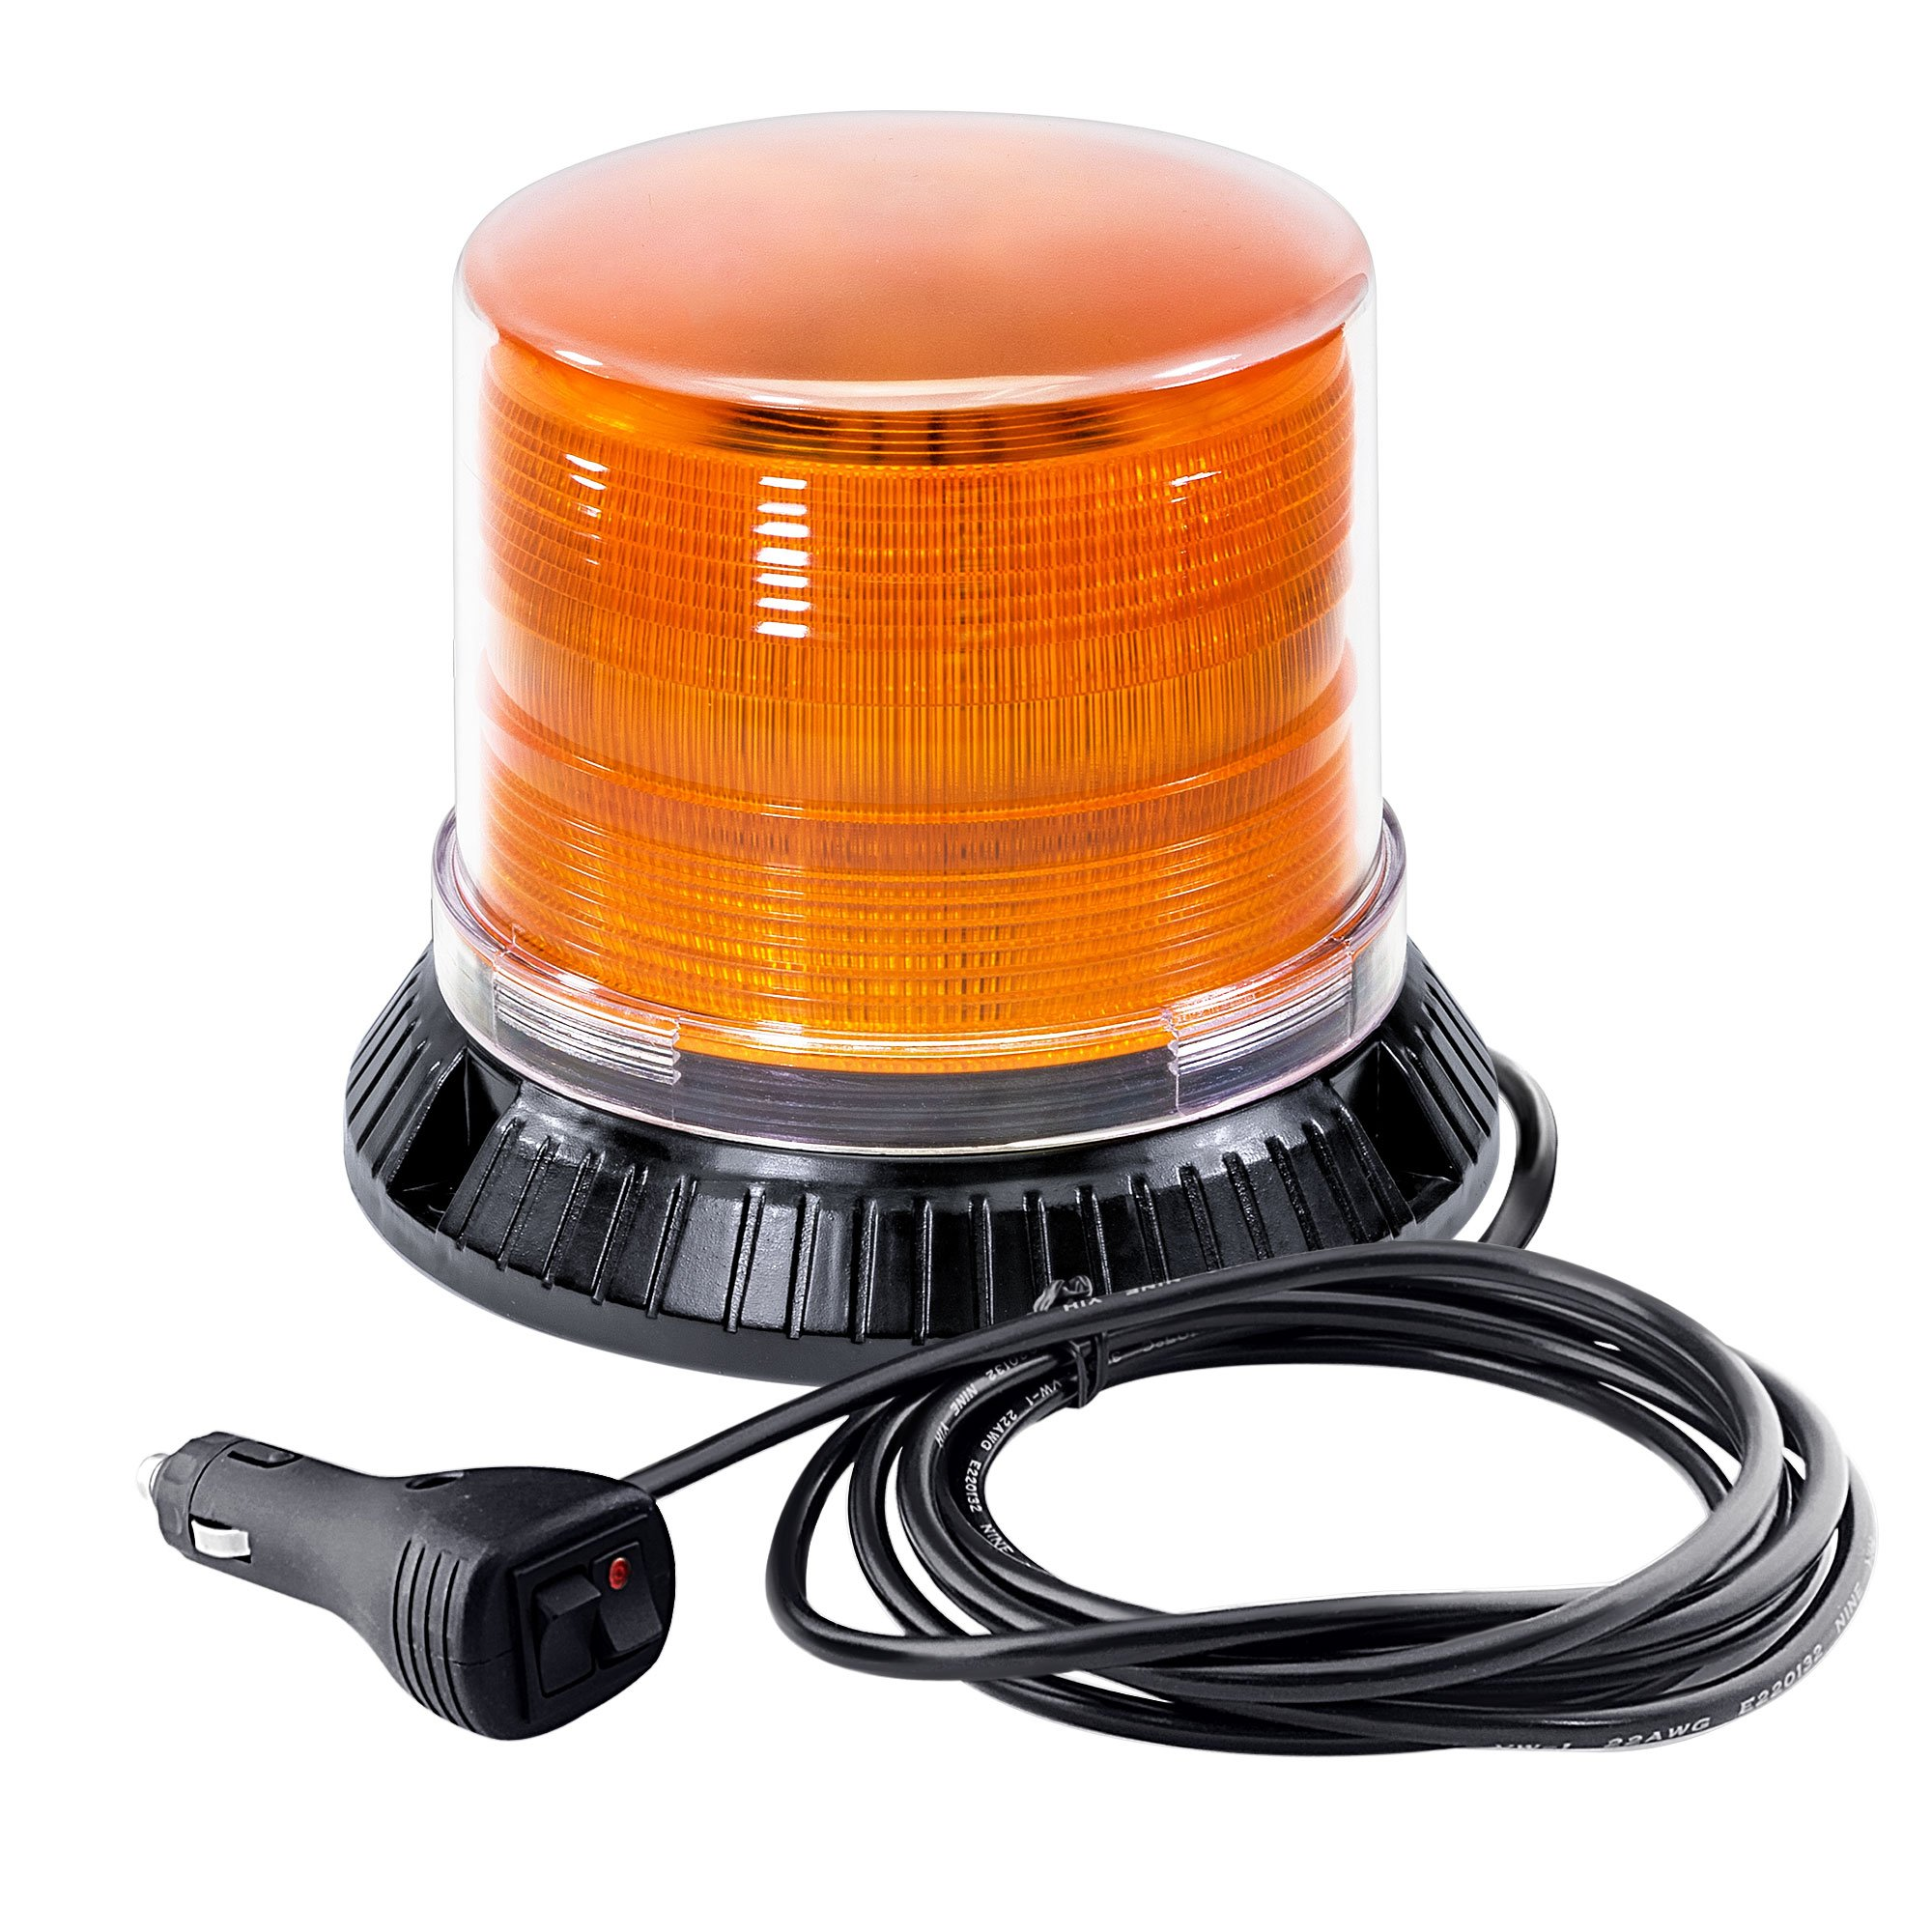 Best Rated In Automotive Emergency Strobe Lights Helpful Customer Police Style Light Circuit Electronics Area Online Led Store Beacon 12 Watt 14 Modes